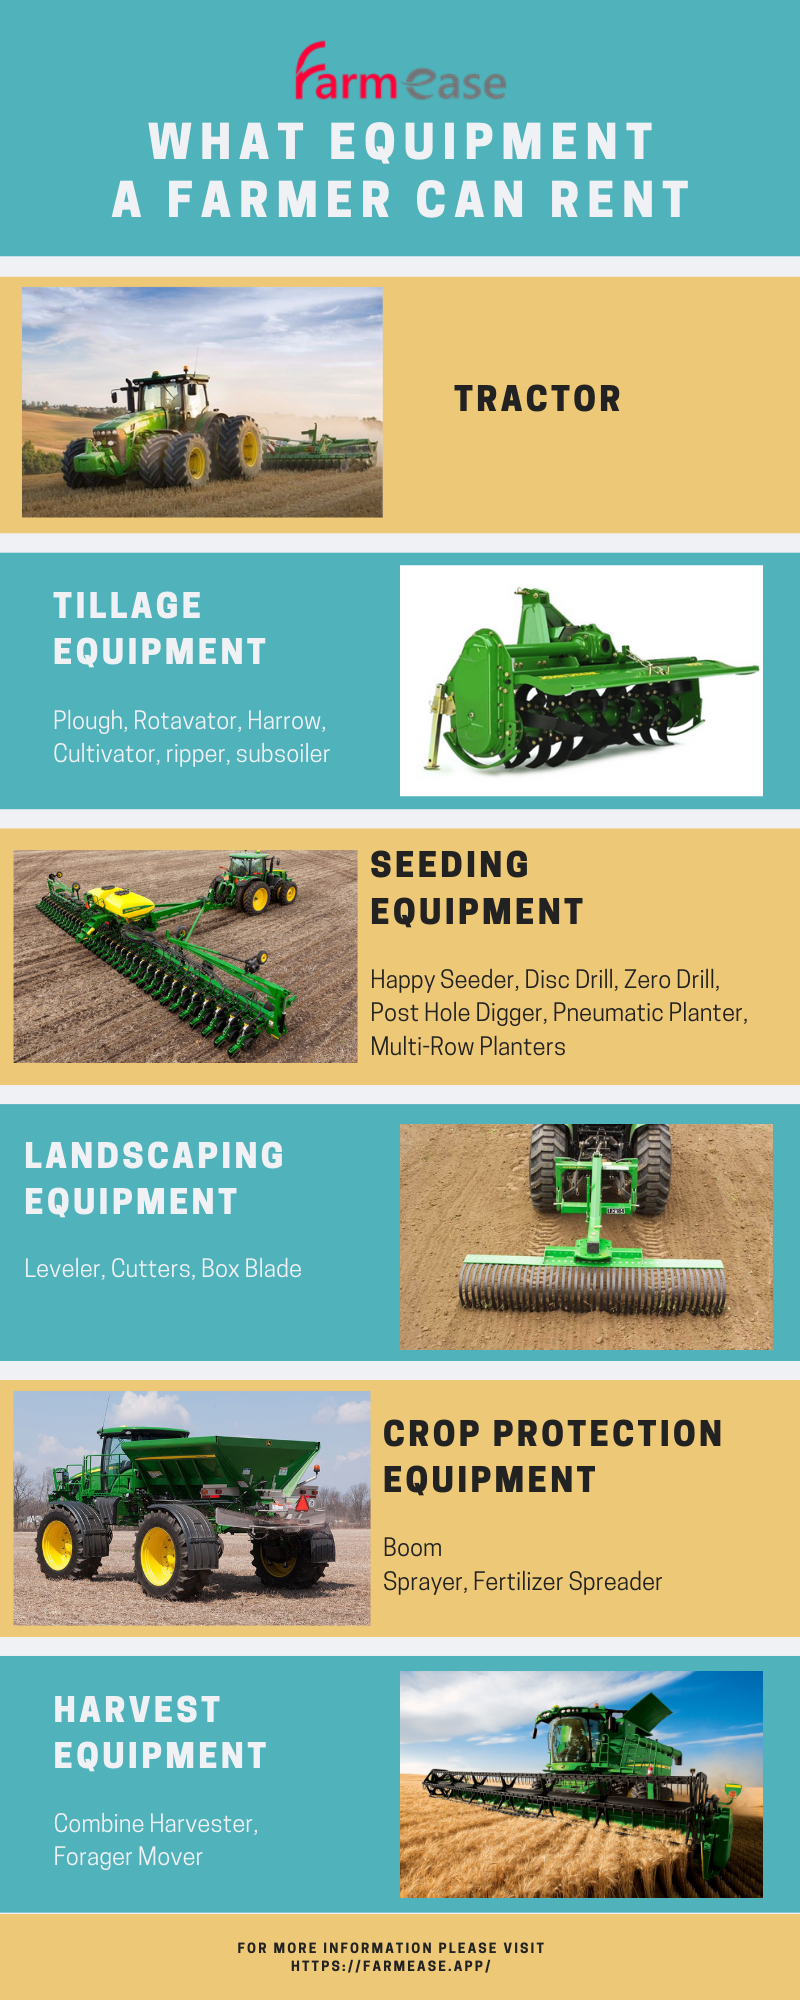 What Equipment A Farmer Can Rent Farm Equipment Landscaping Equipment Farm